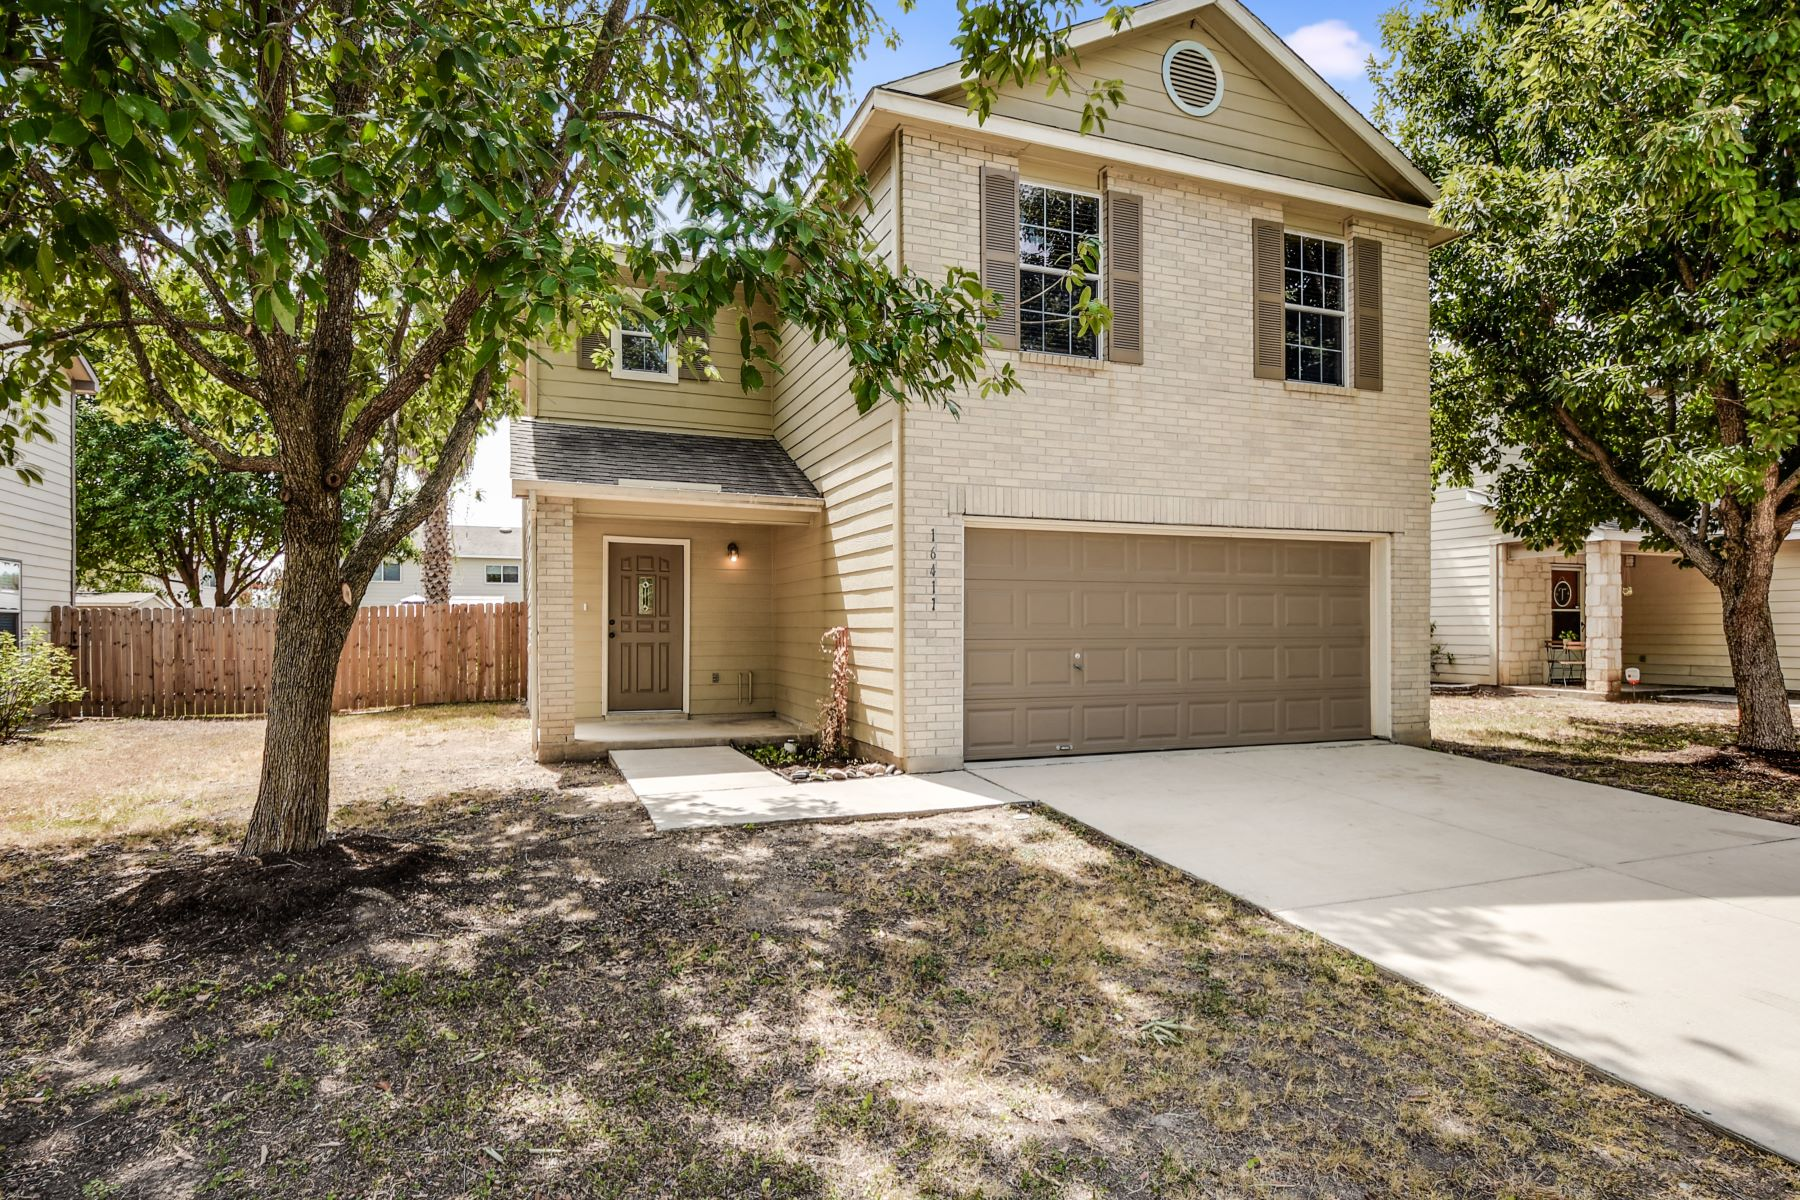 Single Family Homes for Sale at Well Maintained Two Story in Retama Springs 16411 Royal Horse Selma, Texas 78154 United States